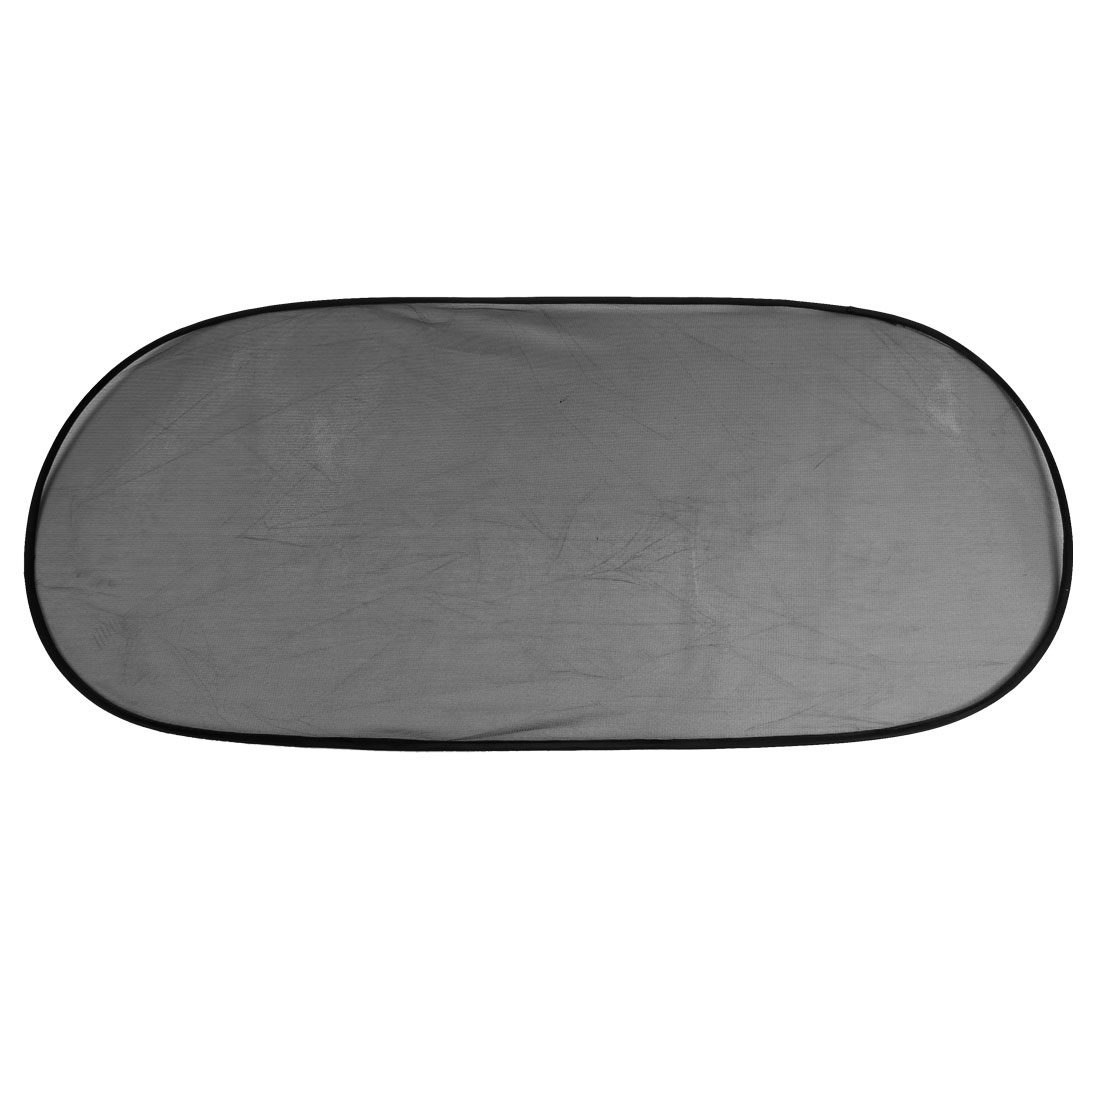 Car Auto Folding Rectangle Side Window Sun Shade Black w Suction Cup 99cm x 47cm